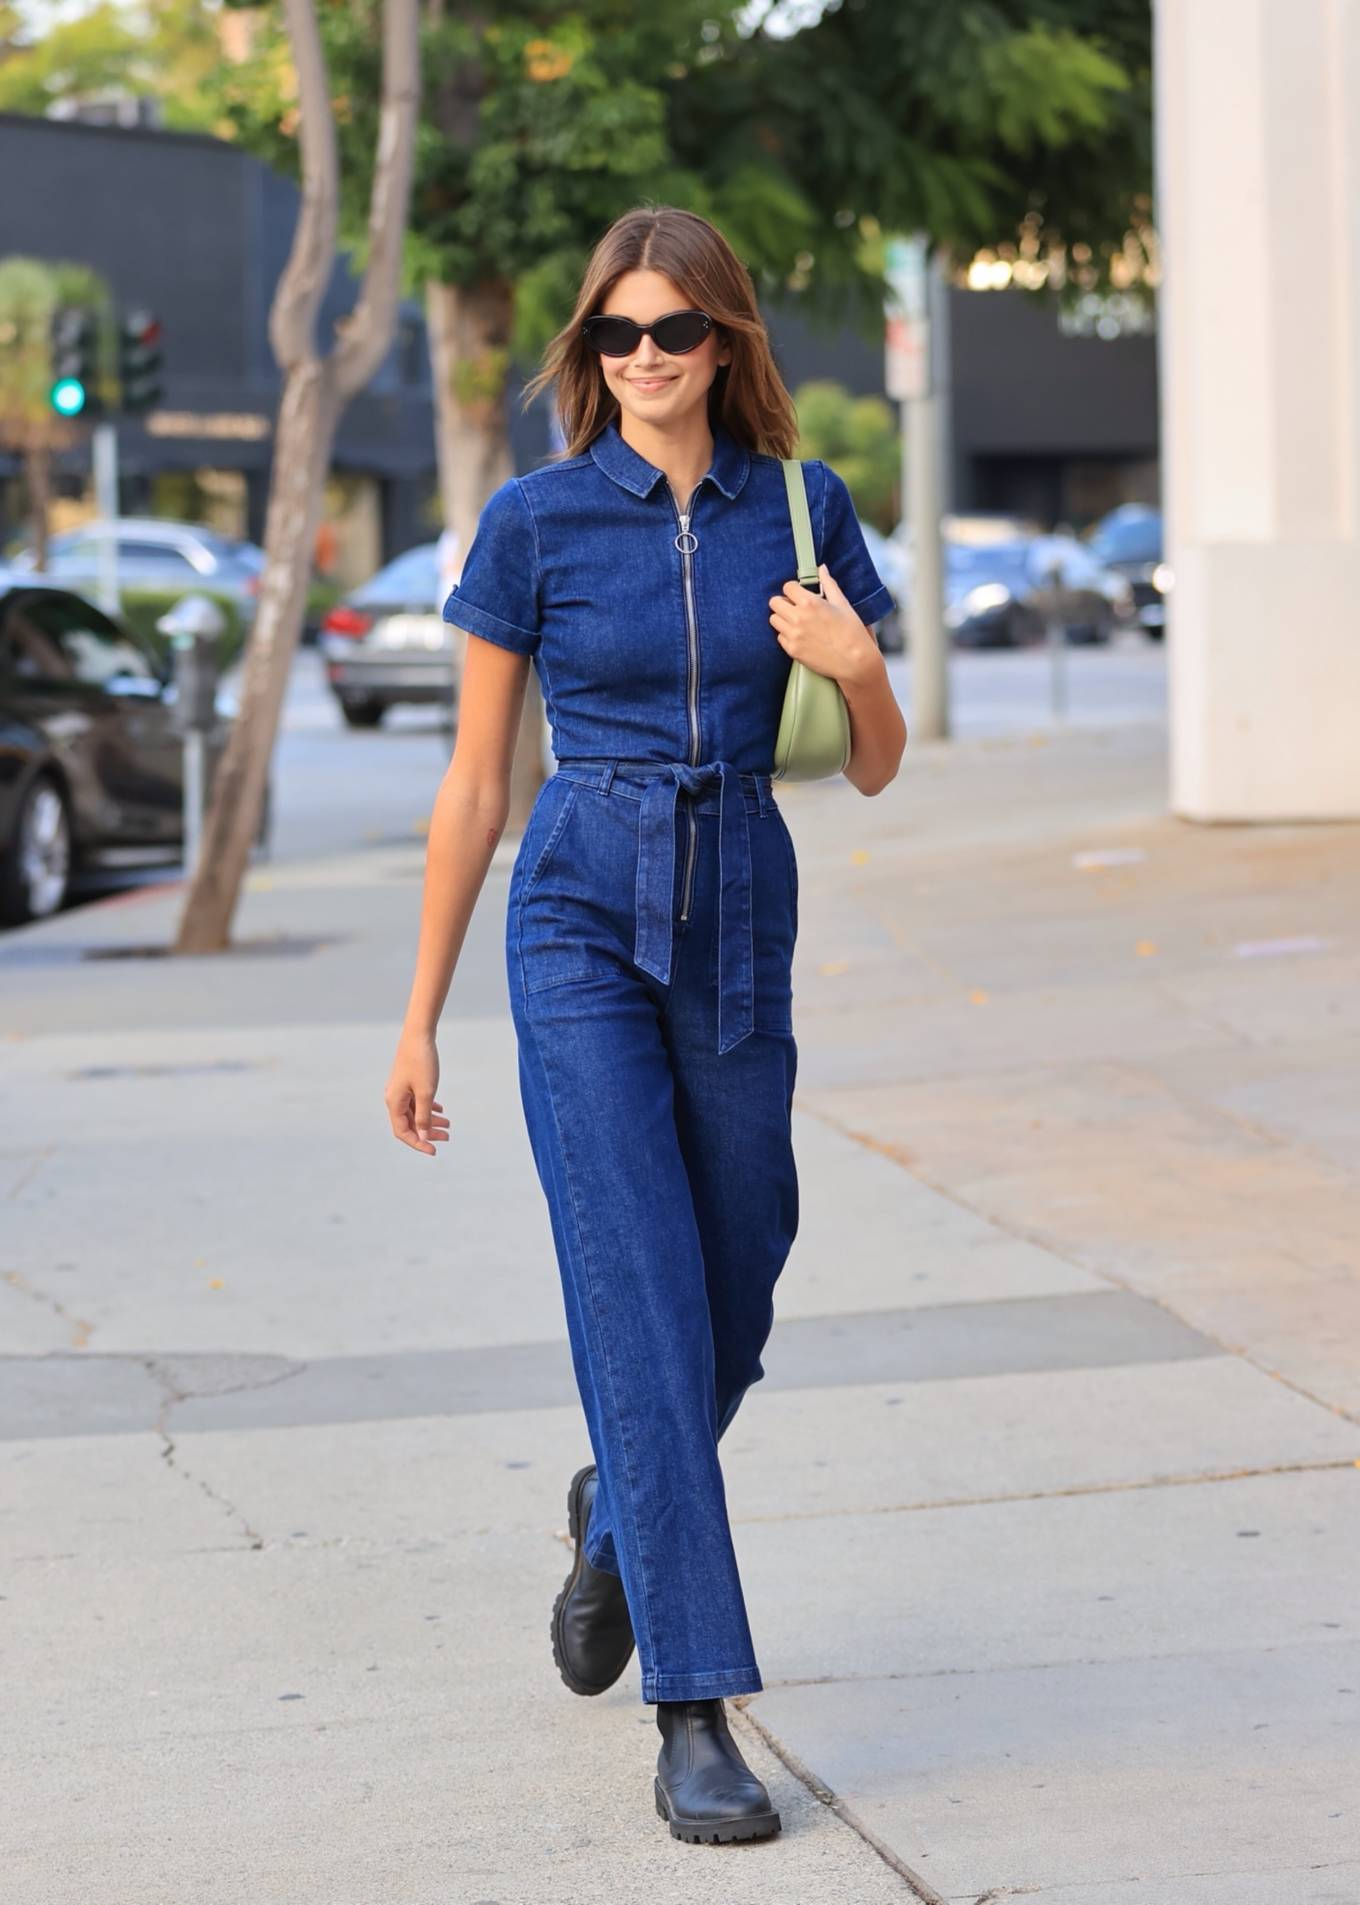 Kaia Gerber donning a fitted navy blue jumpsuit with a denim fabric, short sleeves, shirt collar and side pockets